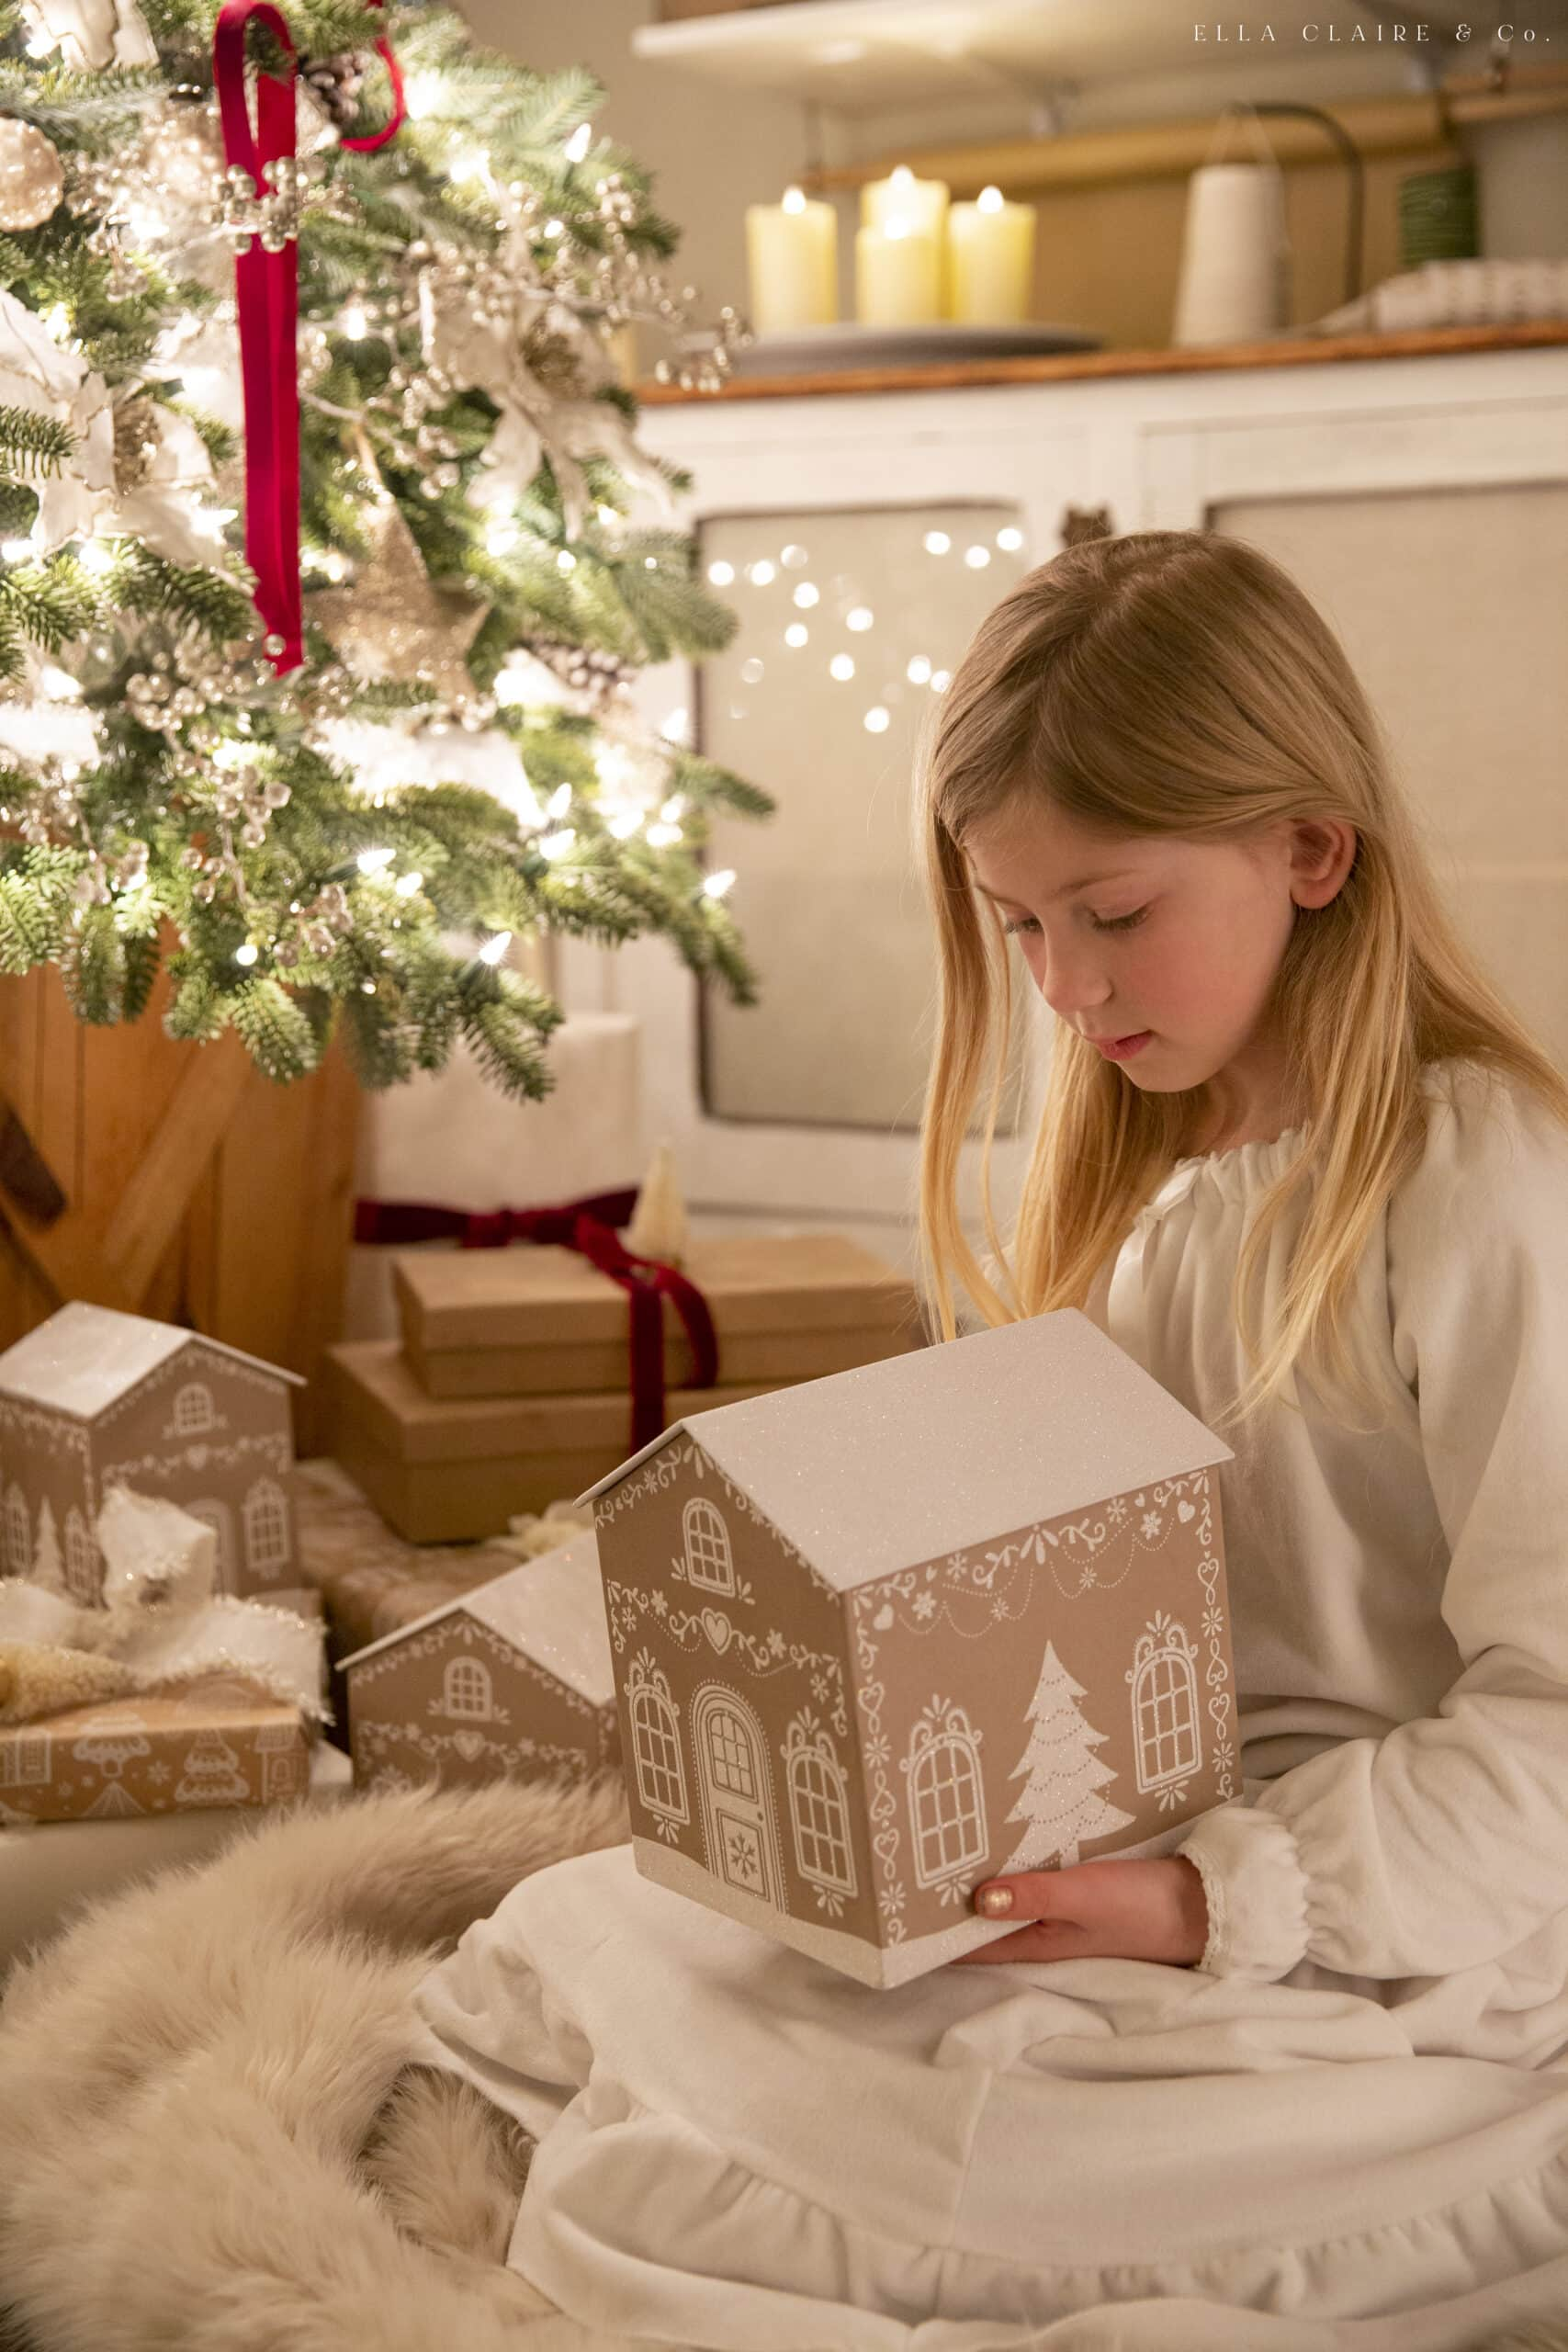 gingerbread gift box held by little girl in Christmas pajamas